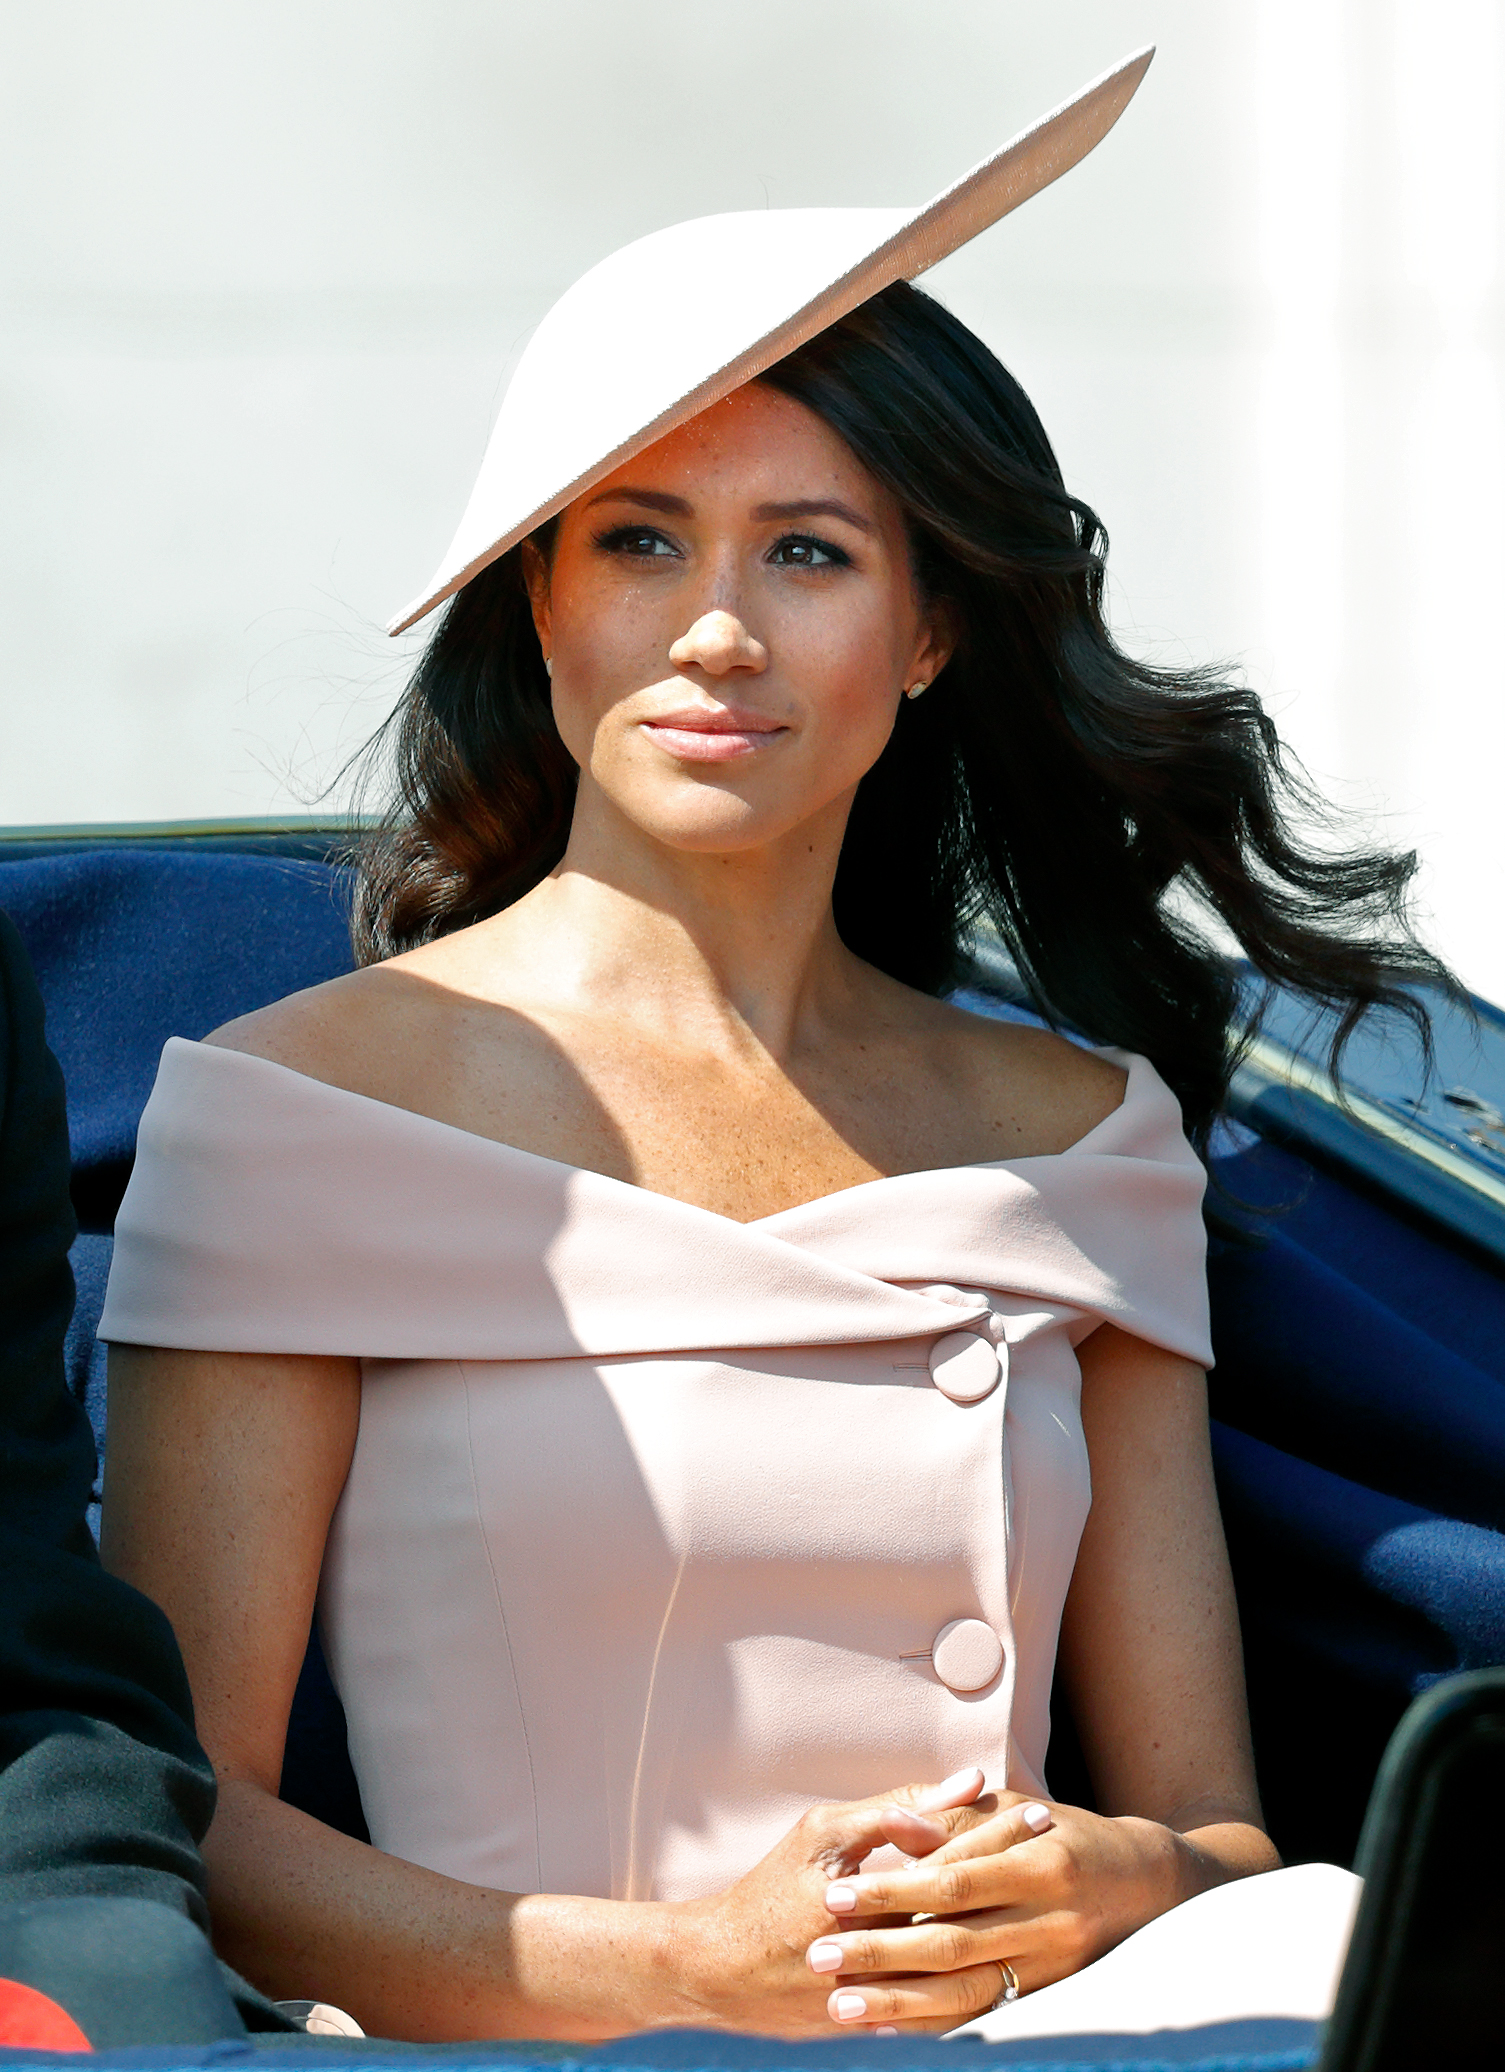 Meghan Markle Just Spoke Openly About the Pressures of Royal Life with Prince Harry